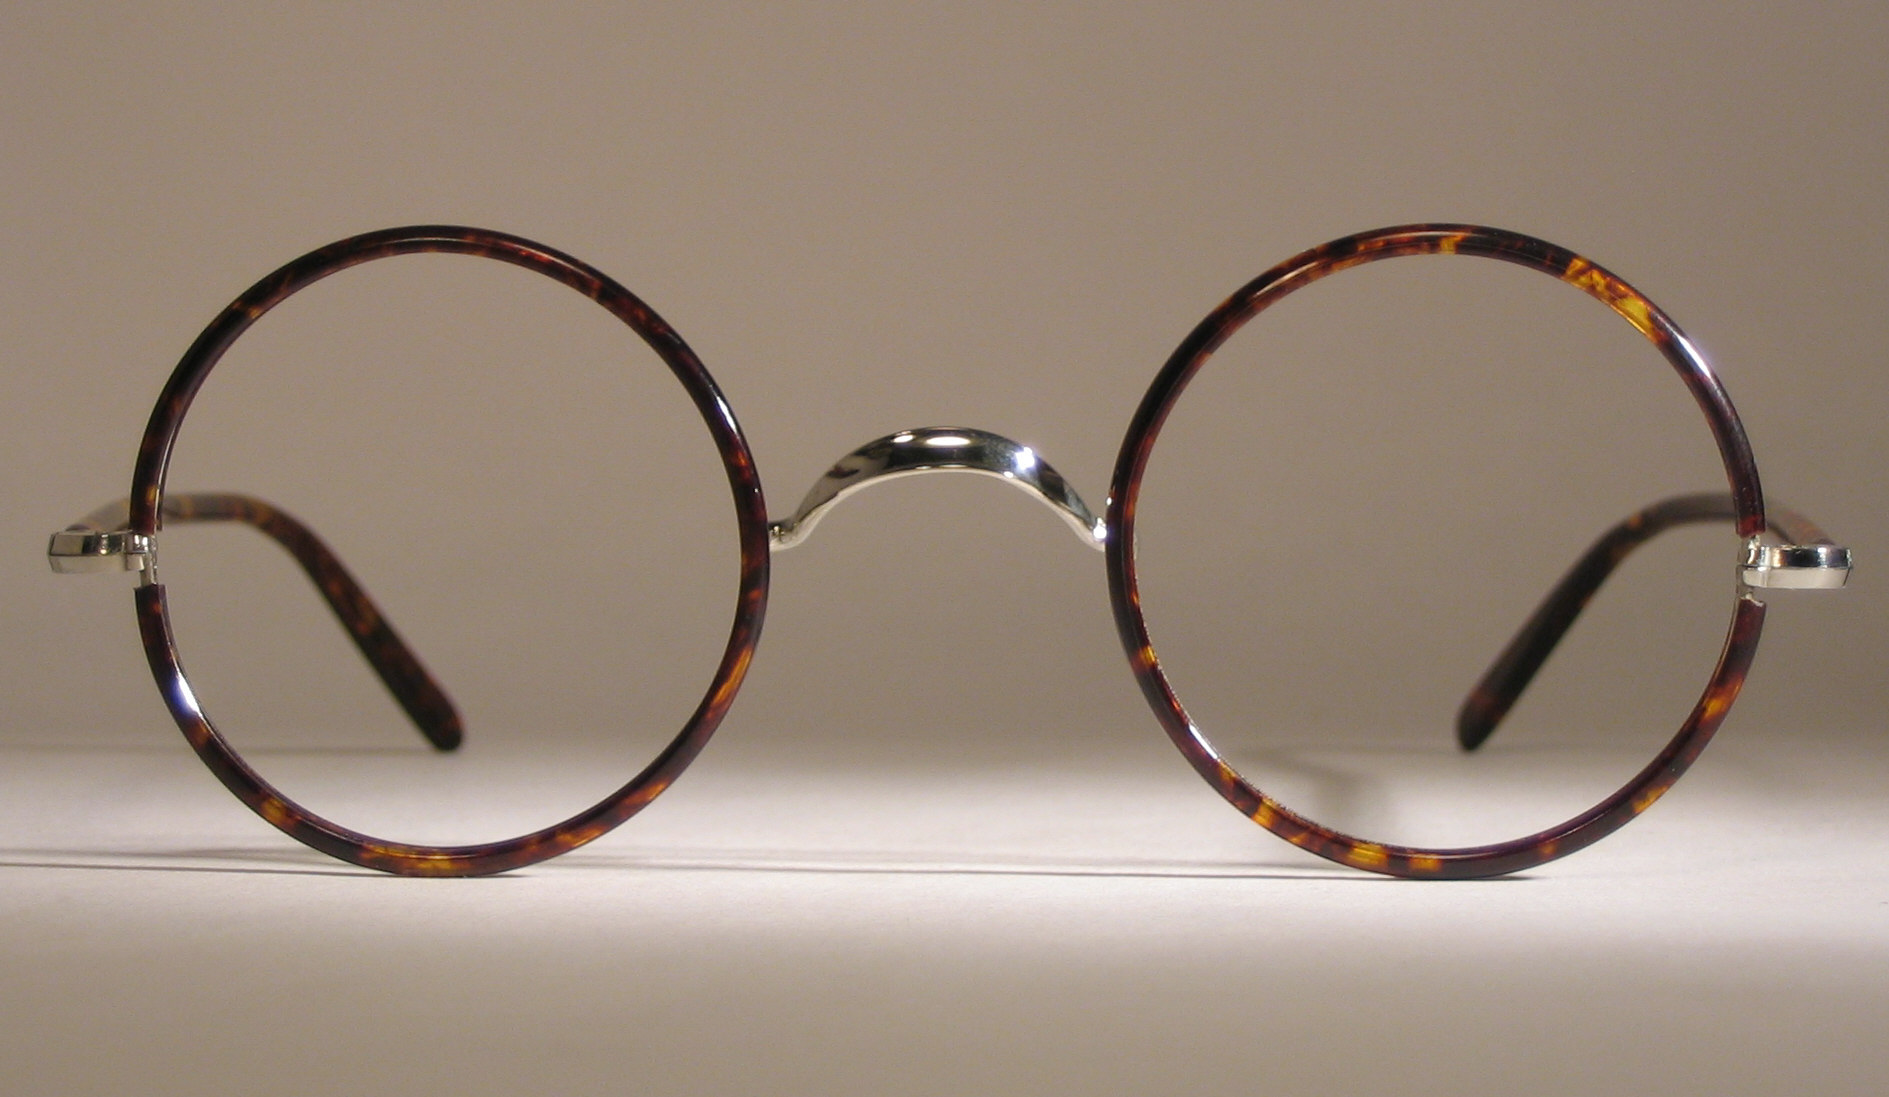 Optometrist Attic Silver Round Windsor Antique Eyeglasses